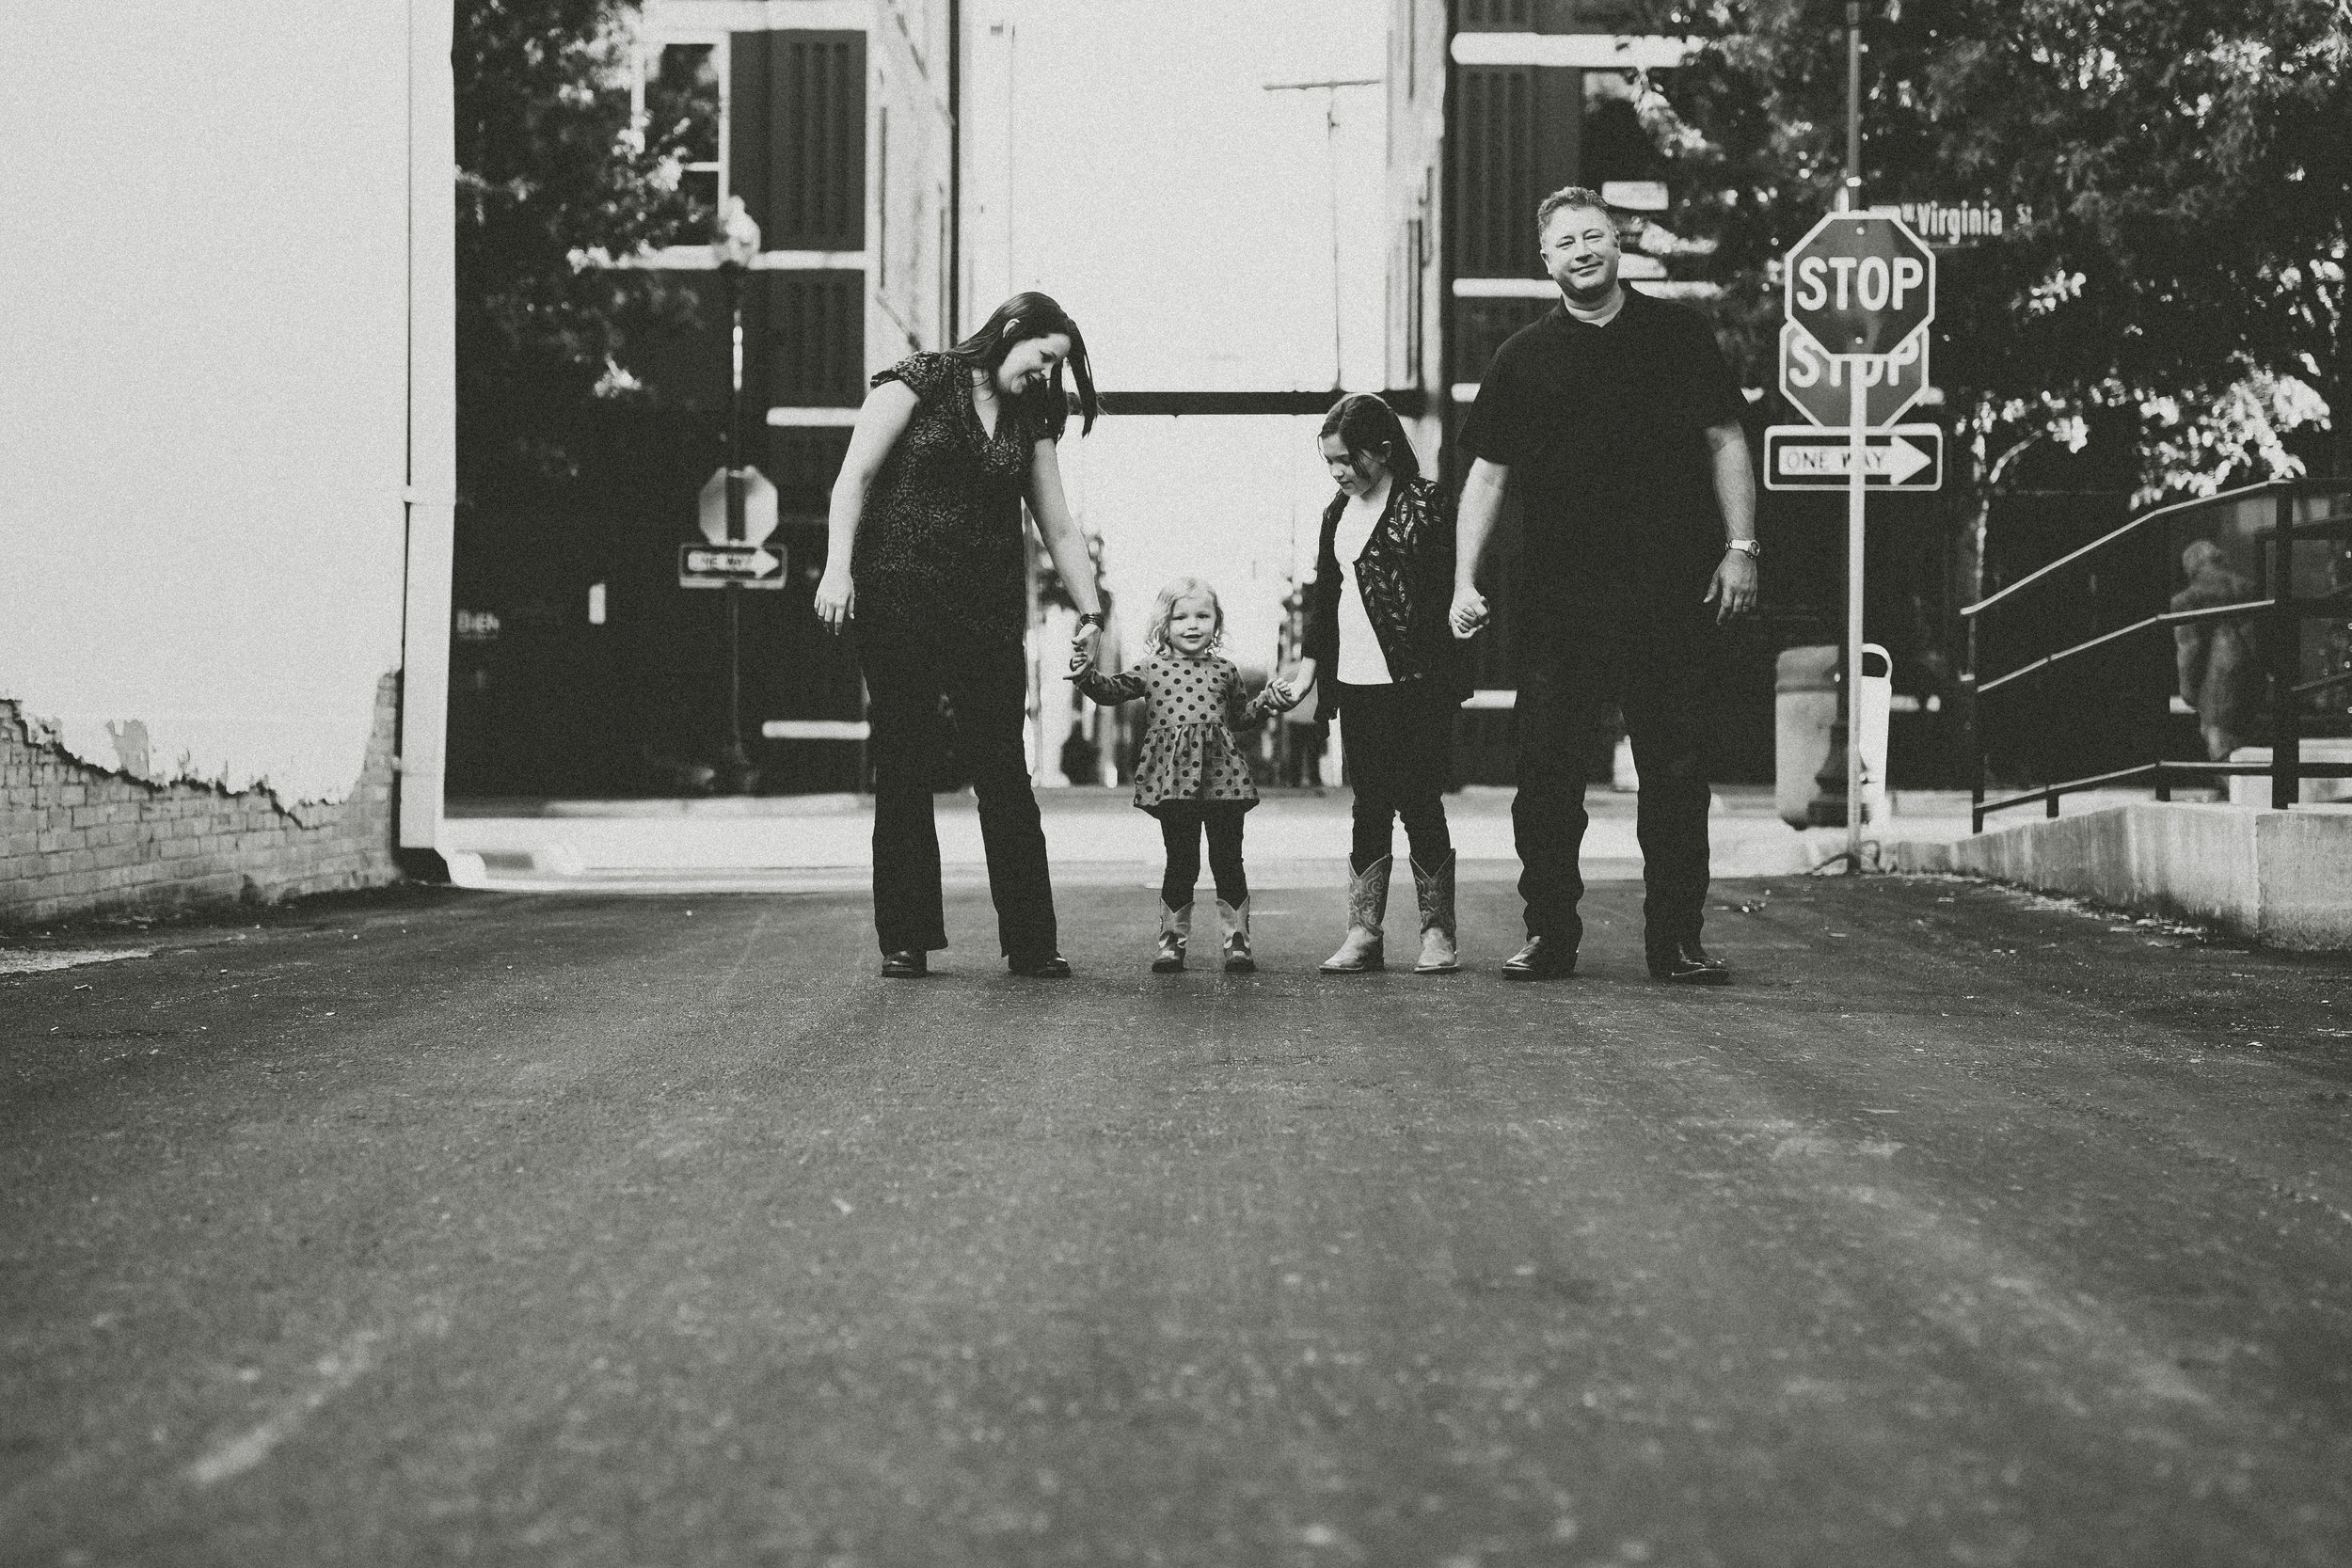 YOUR FAMILY HAS A   BEAUTIFUL STORY    TO TELL     Forget perfectly posed photos, you know moments matter more. Your life is messy and chaotic in the most beautiful way. You recognize that documenting your family means more than smiling at a camera.